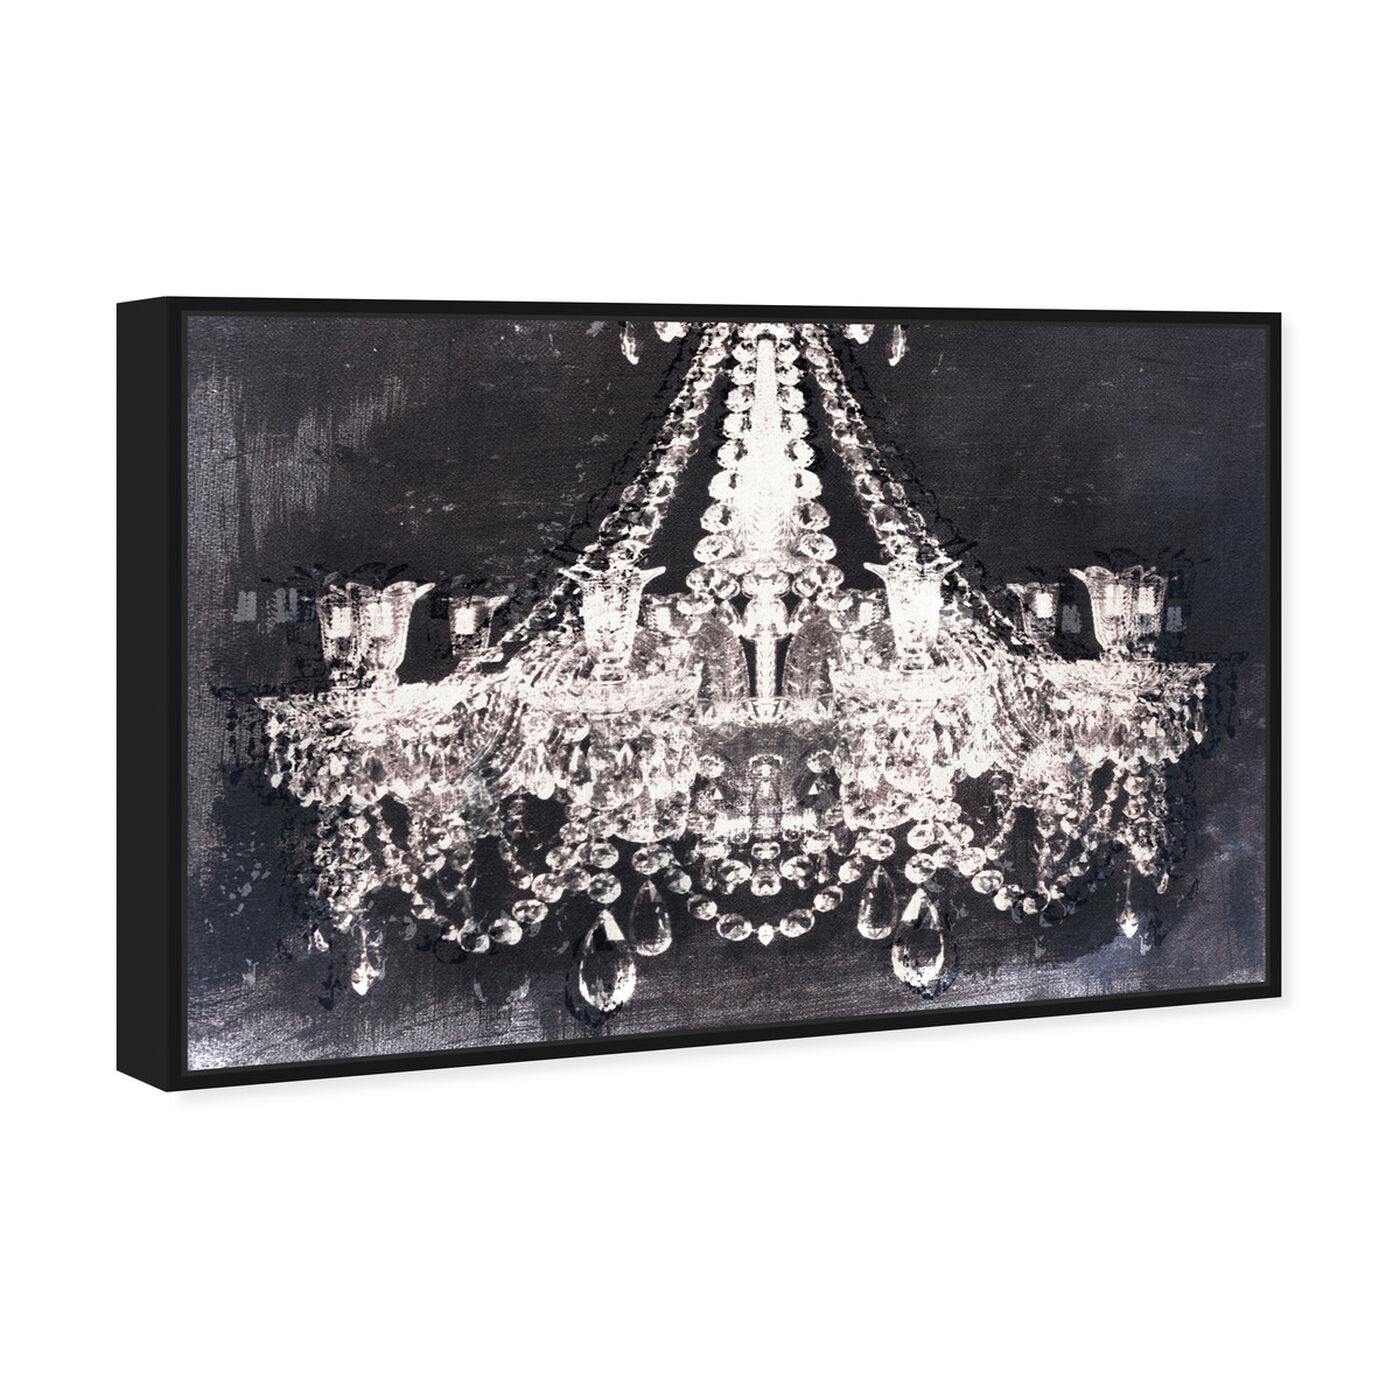 Angled view of Dramatic Entrance Night featuring fashion and glam and chandeliers art.